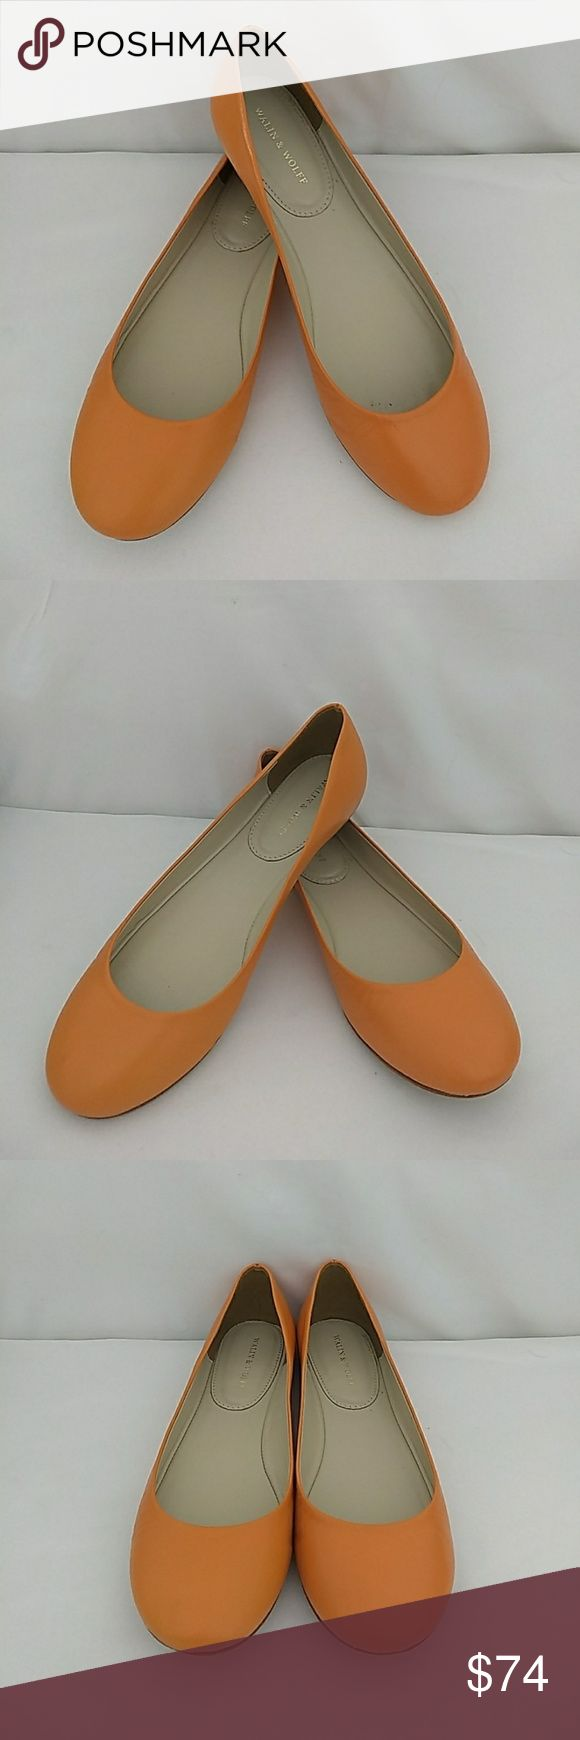 Walin & Wolff Ally Kimberly Orange Ballet Shoes Italian made exclusively for Walin & Wolff.  Walin & Wolff is a specialty retail of designer shoes, handbags, & accessories in New Canaan, CT. Style is called Ally. In excellent condition with only very minimal signs of wear on the bottom soles. Walin & Wolff Shoes Flats & Loafers